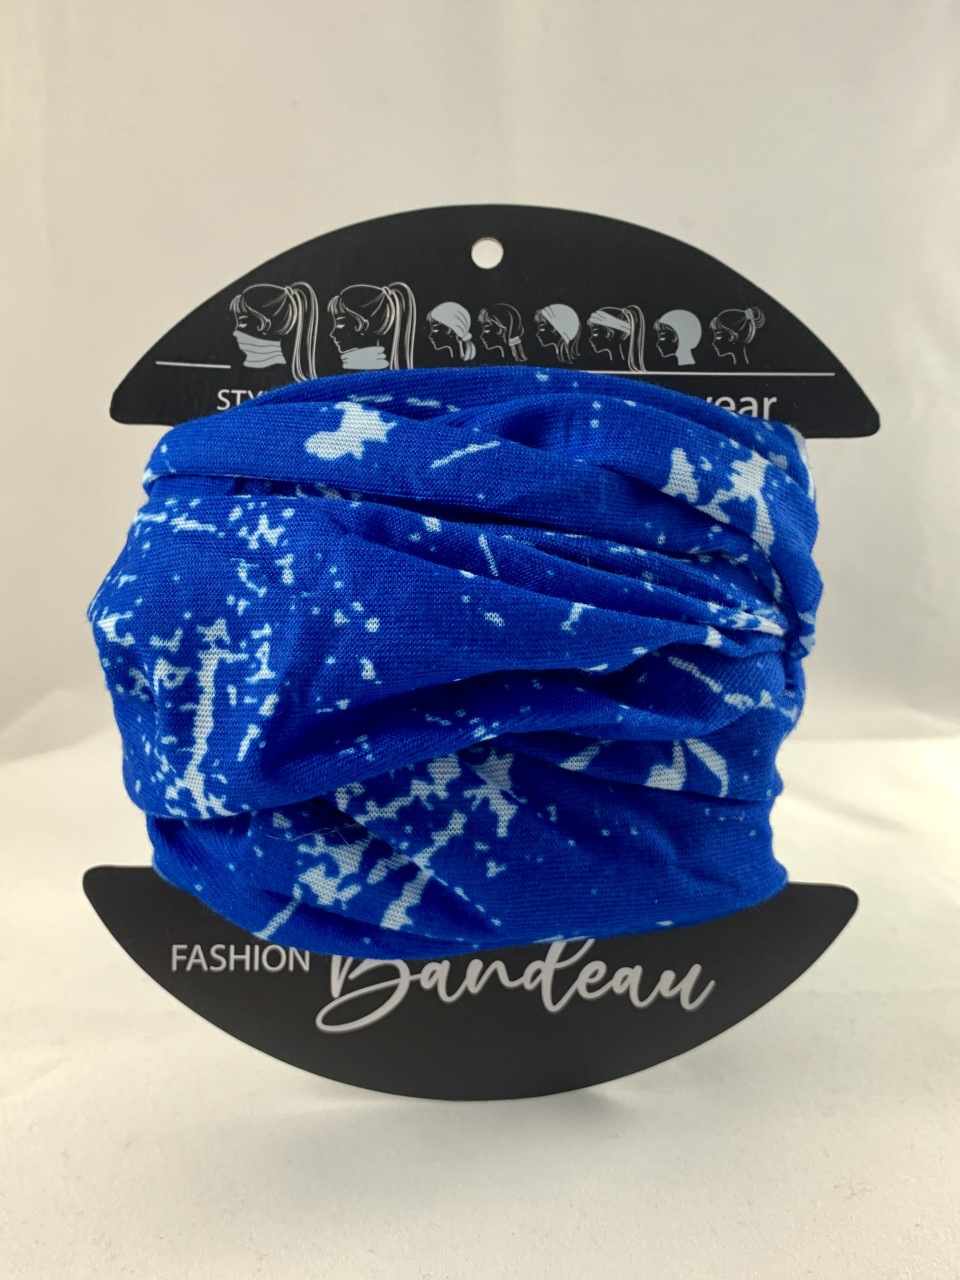 Blue and White bandeau masks from Urban CBD Collective can help you stay safe from COVID-19